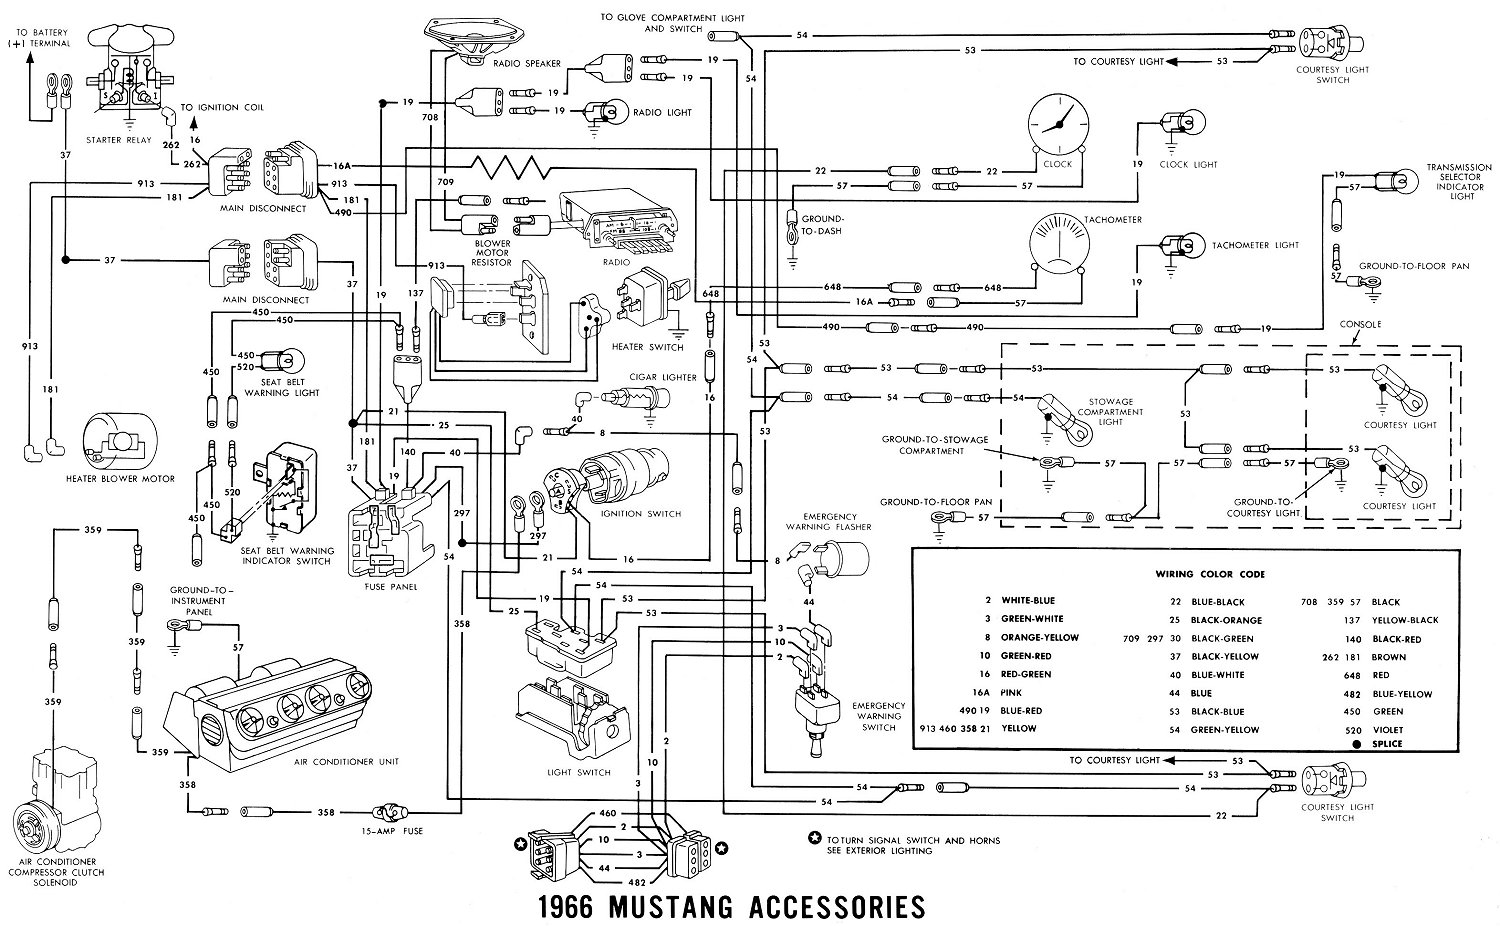 66acces1 66 mustang wiring diagram online 65 ford mustang wiring diagram 1965 ford mustang wiring diagrams at sewacar.co